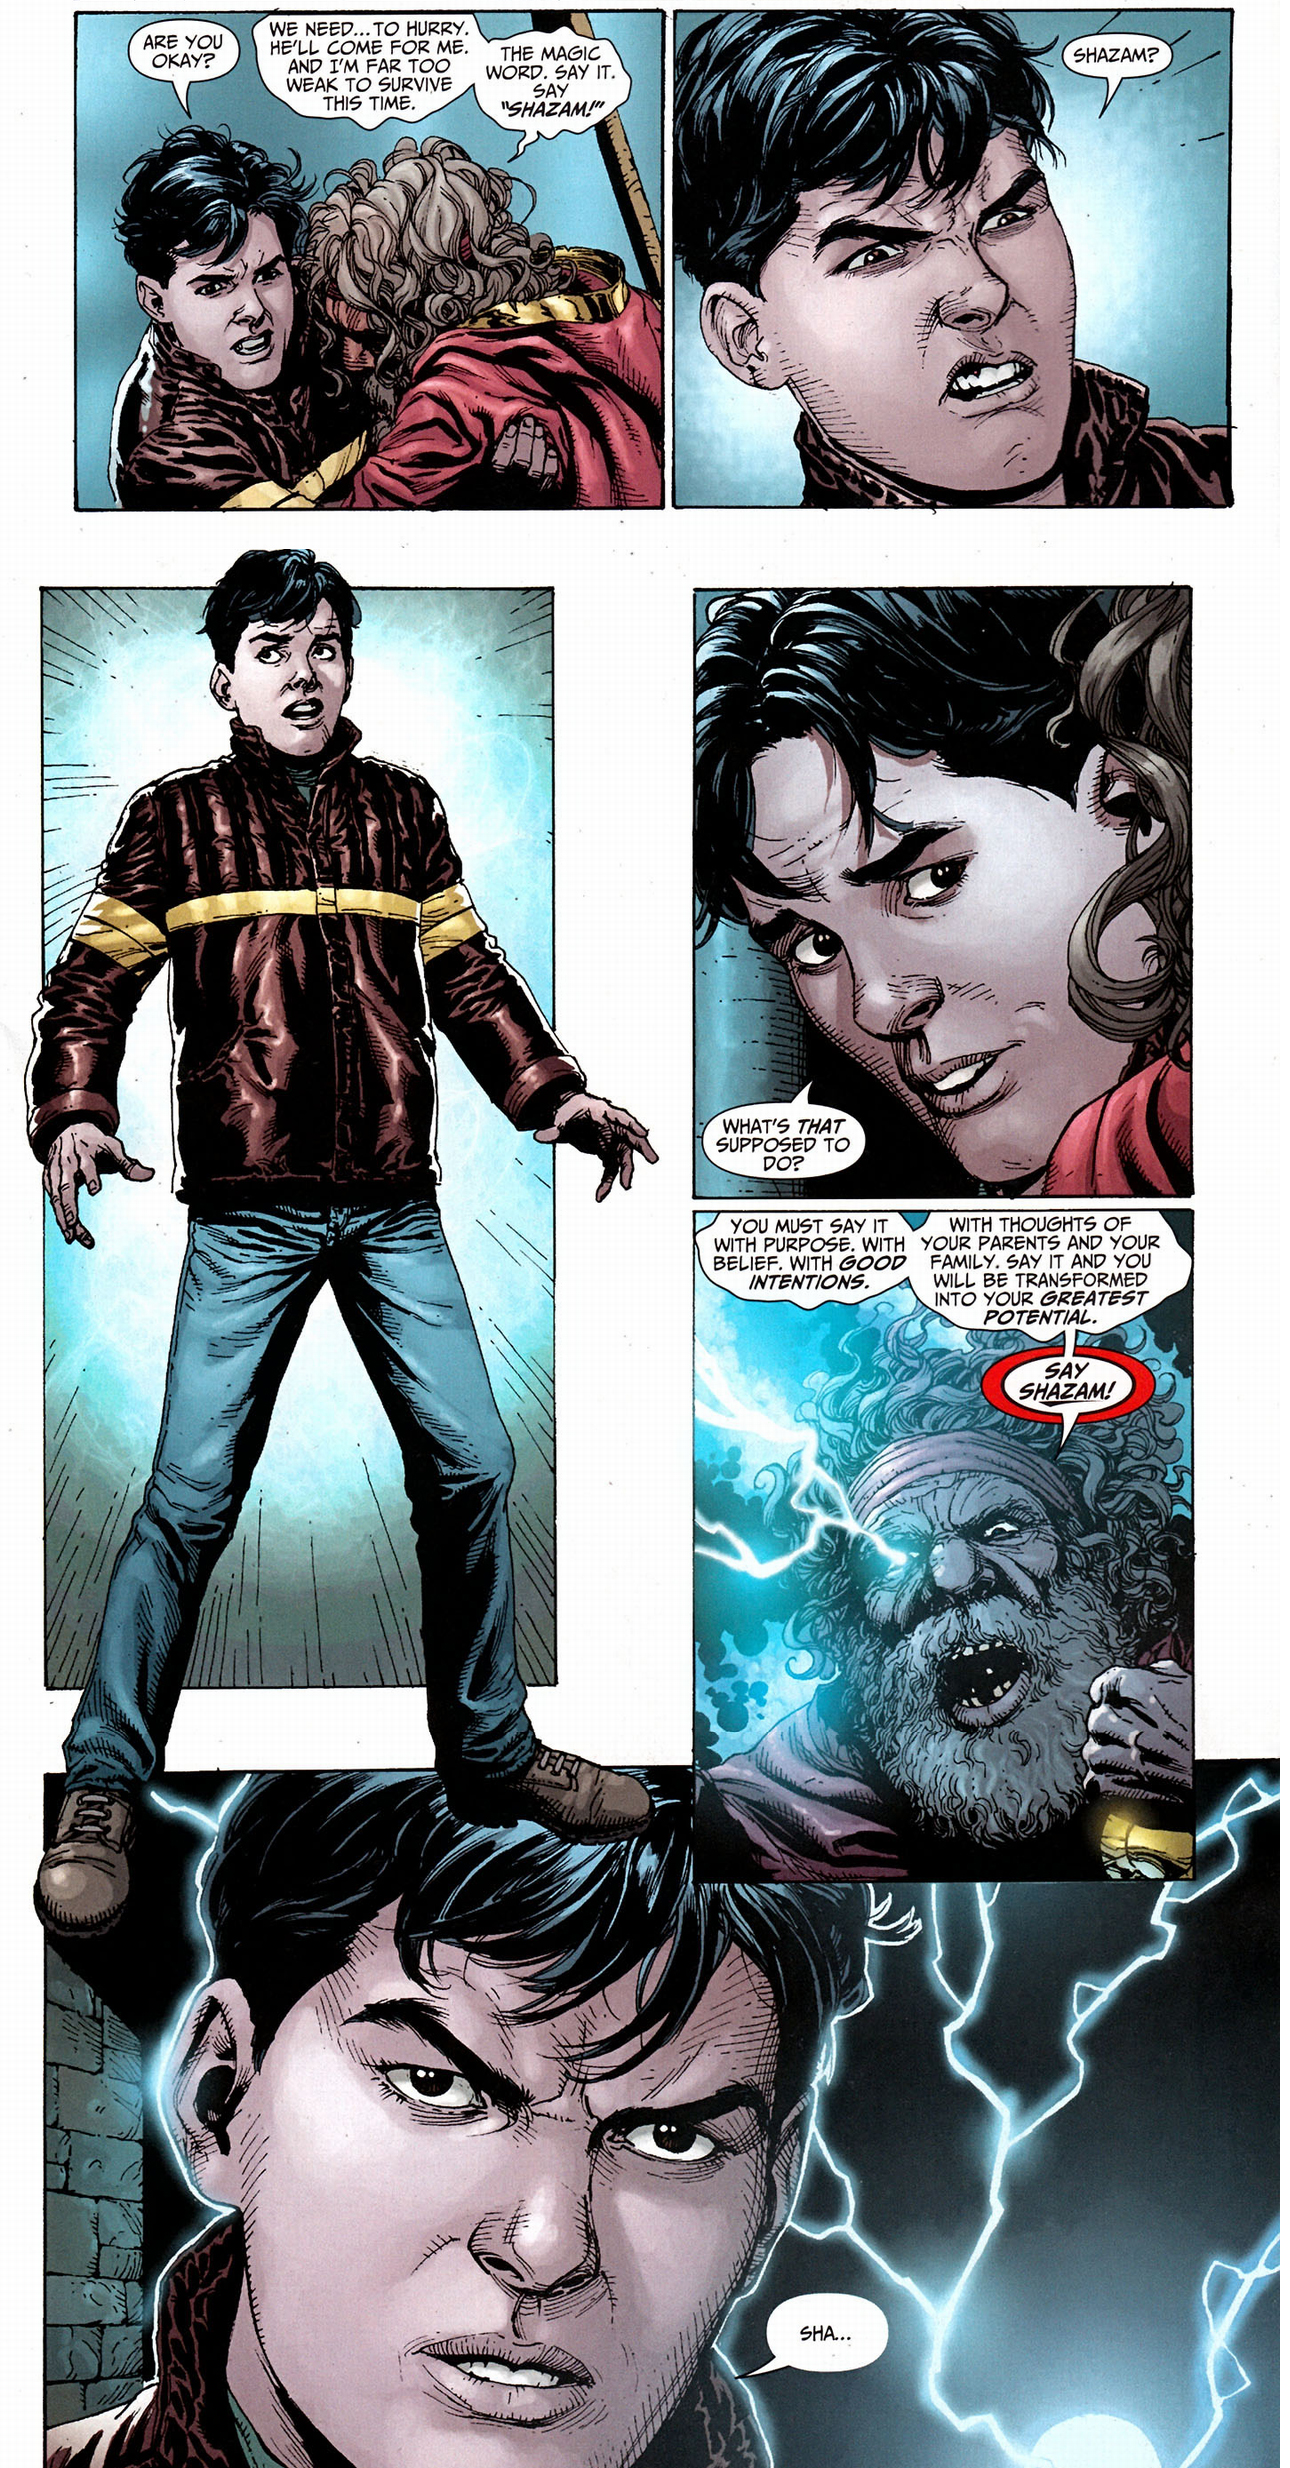 billy batson transforms into shazam for the first time